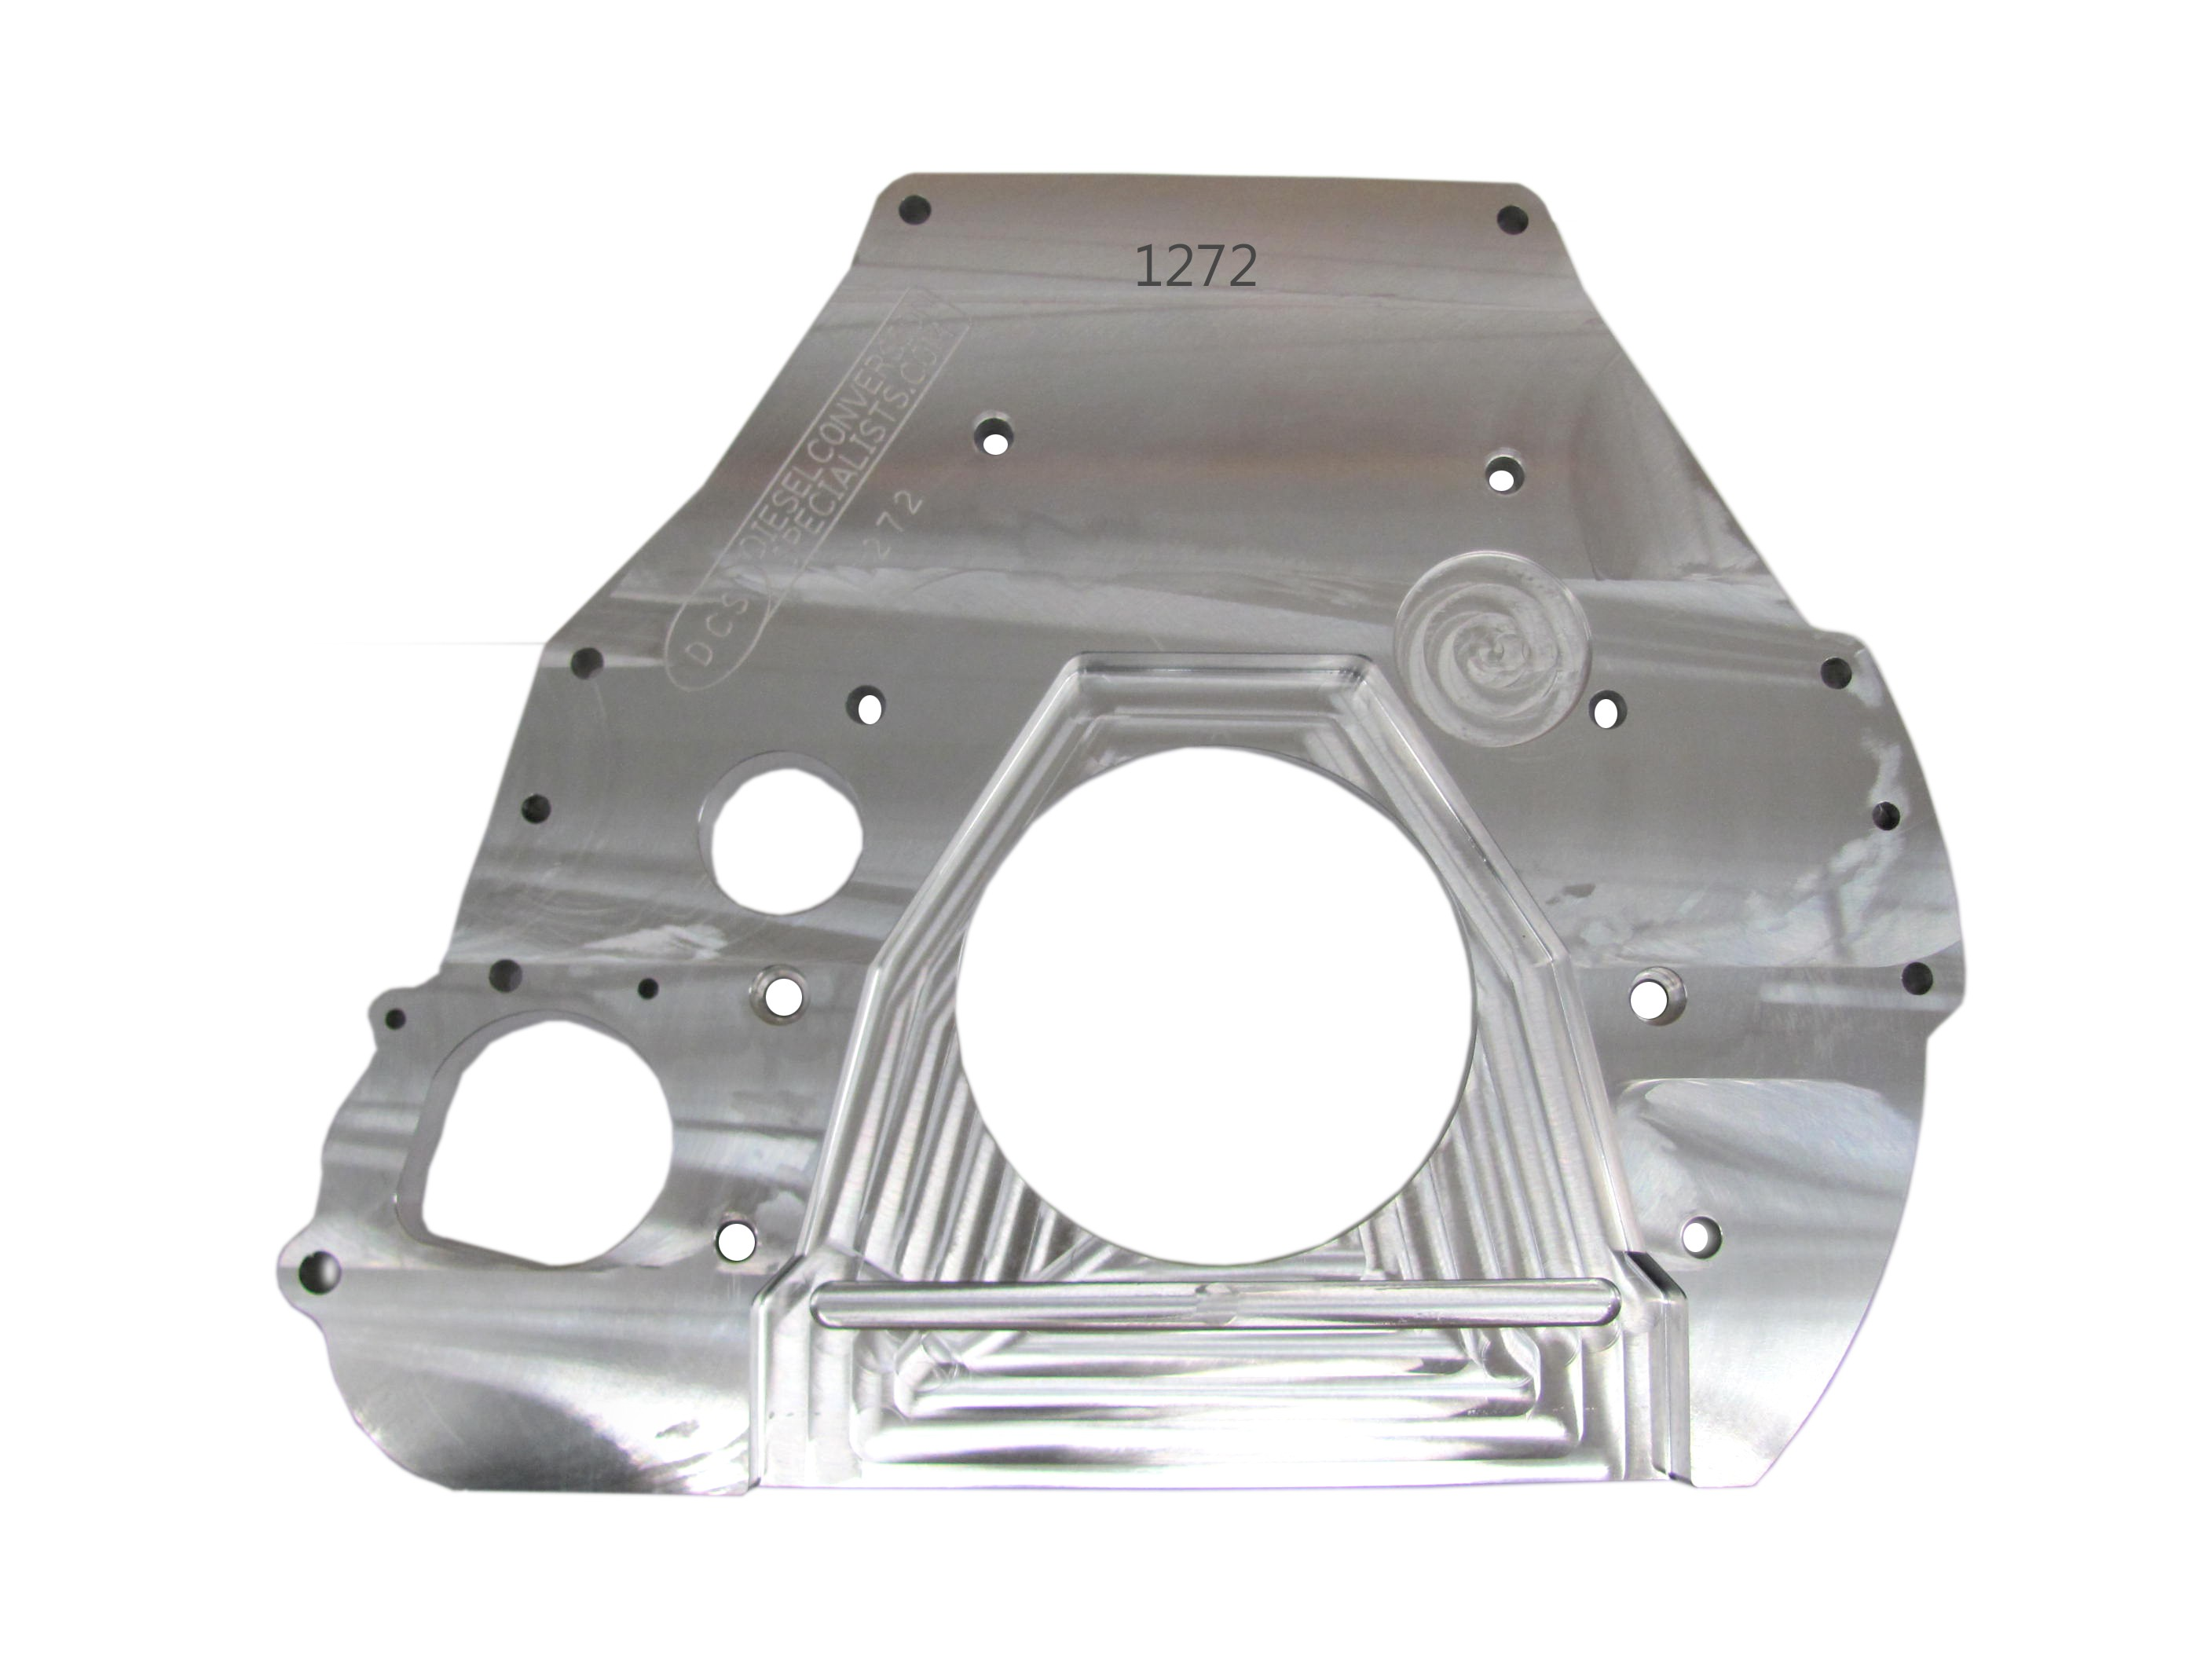 Adapter Plate - 12V/24V to Ford 7 3L ZF-5